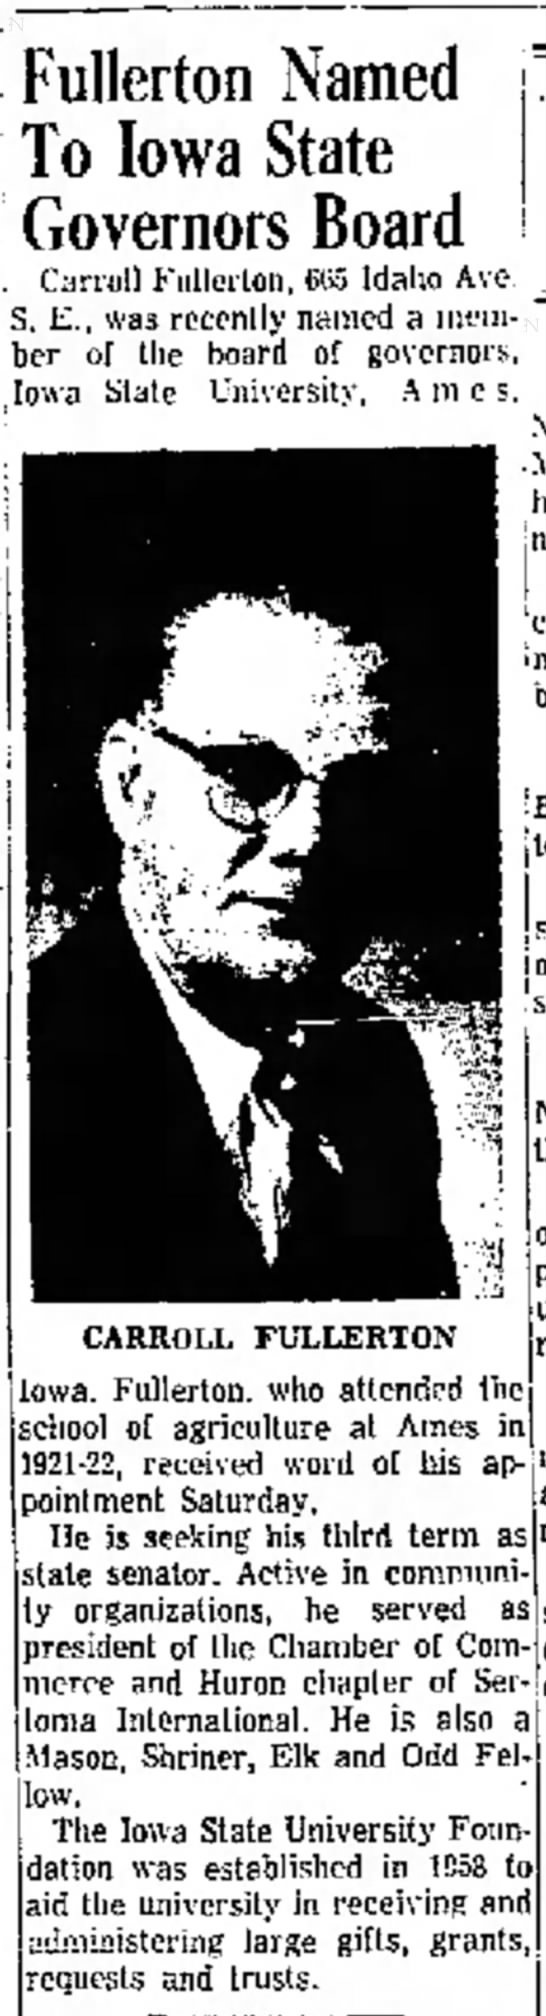 Carroll Fullerton Named to Iowa State Governors Board - 30 June 1960 - be the Carroll Kullcrlon, 6(15 Idaho Ave rct[ ....